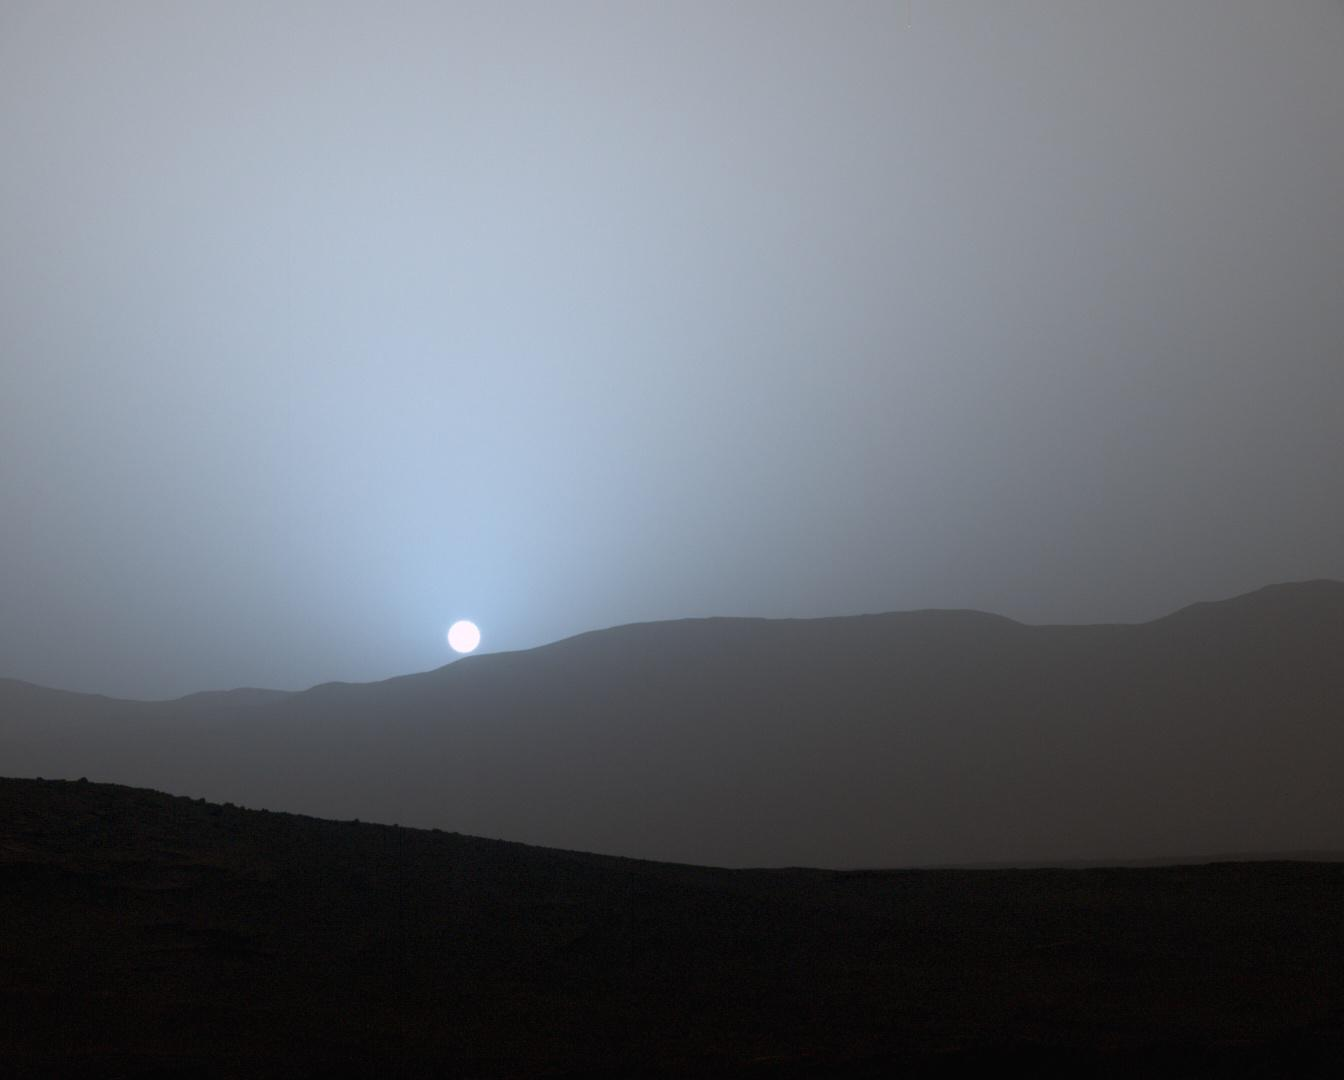 mars-rover-curiosity-sunset